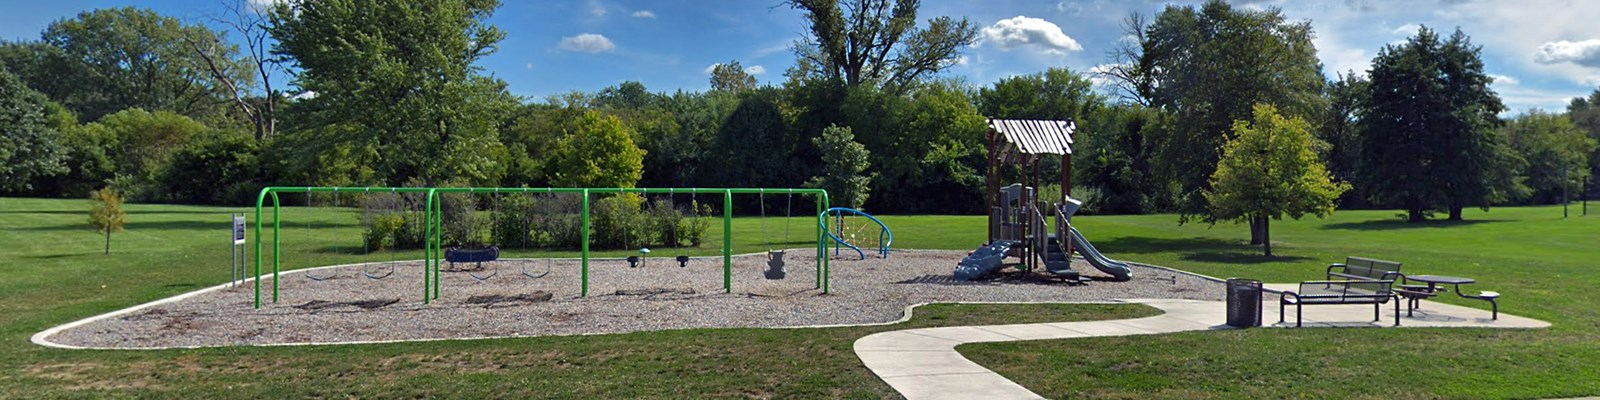 Burbank Park, Athletic Fields, Playground and Fun